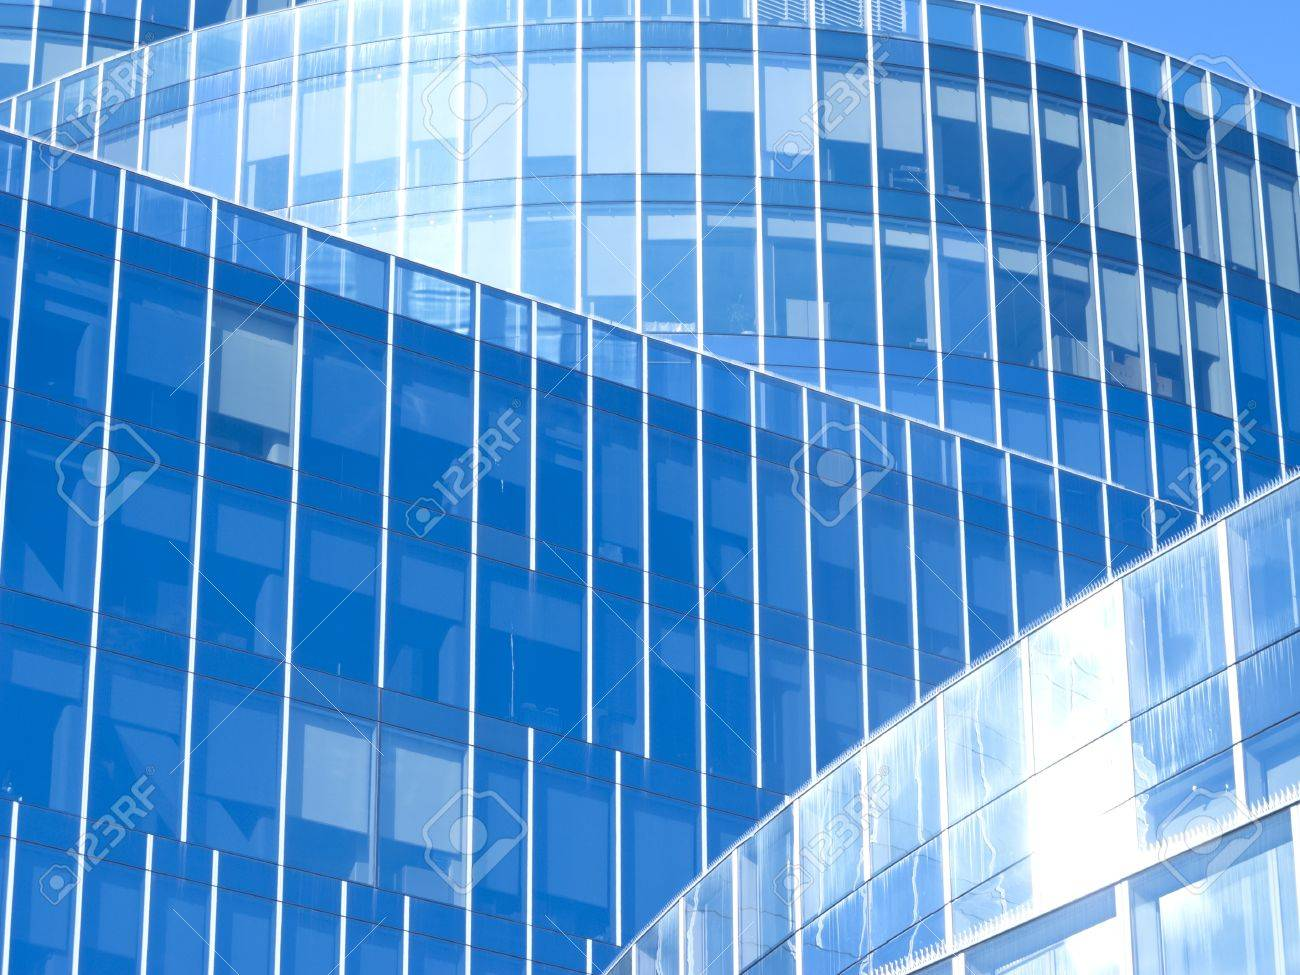 modern office building with blue glass facade futuristic stock photo 18778142 blue glass top modern office